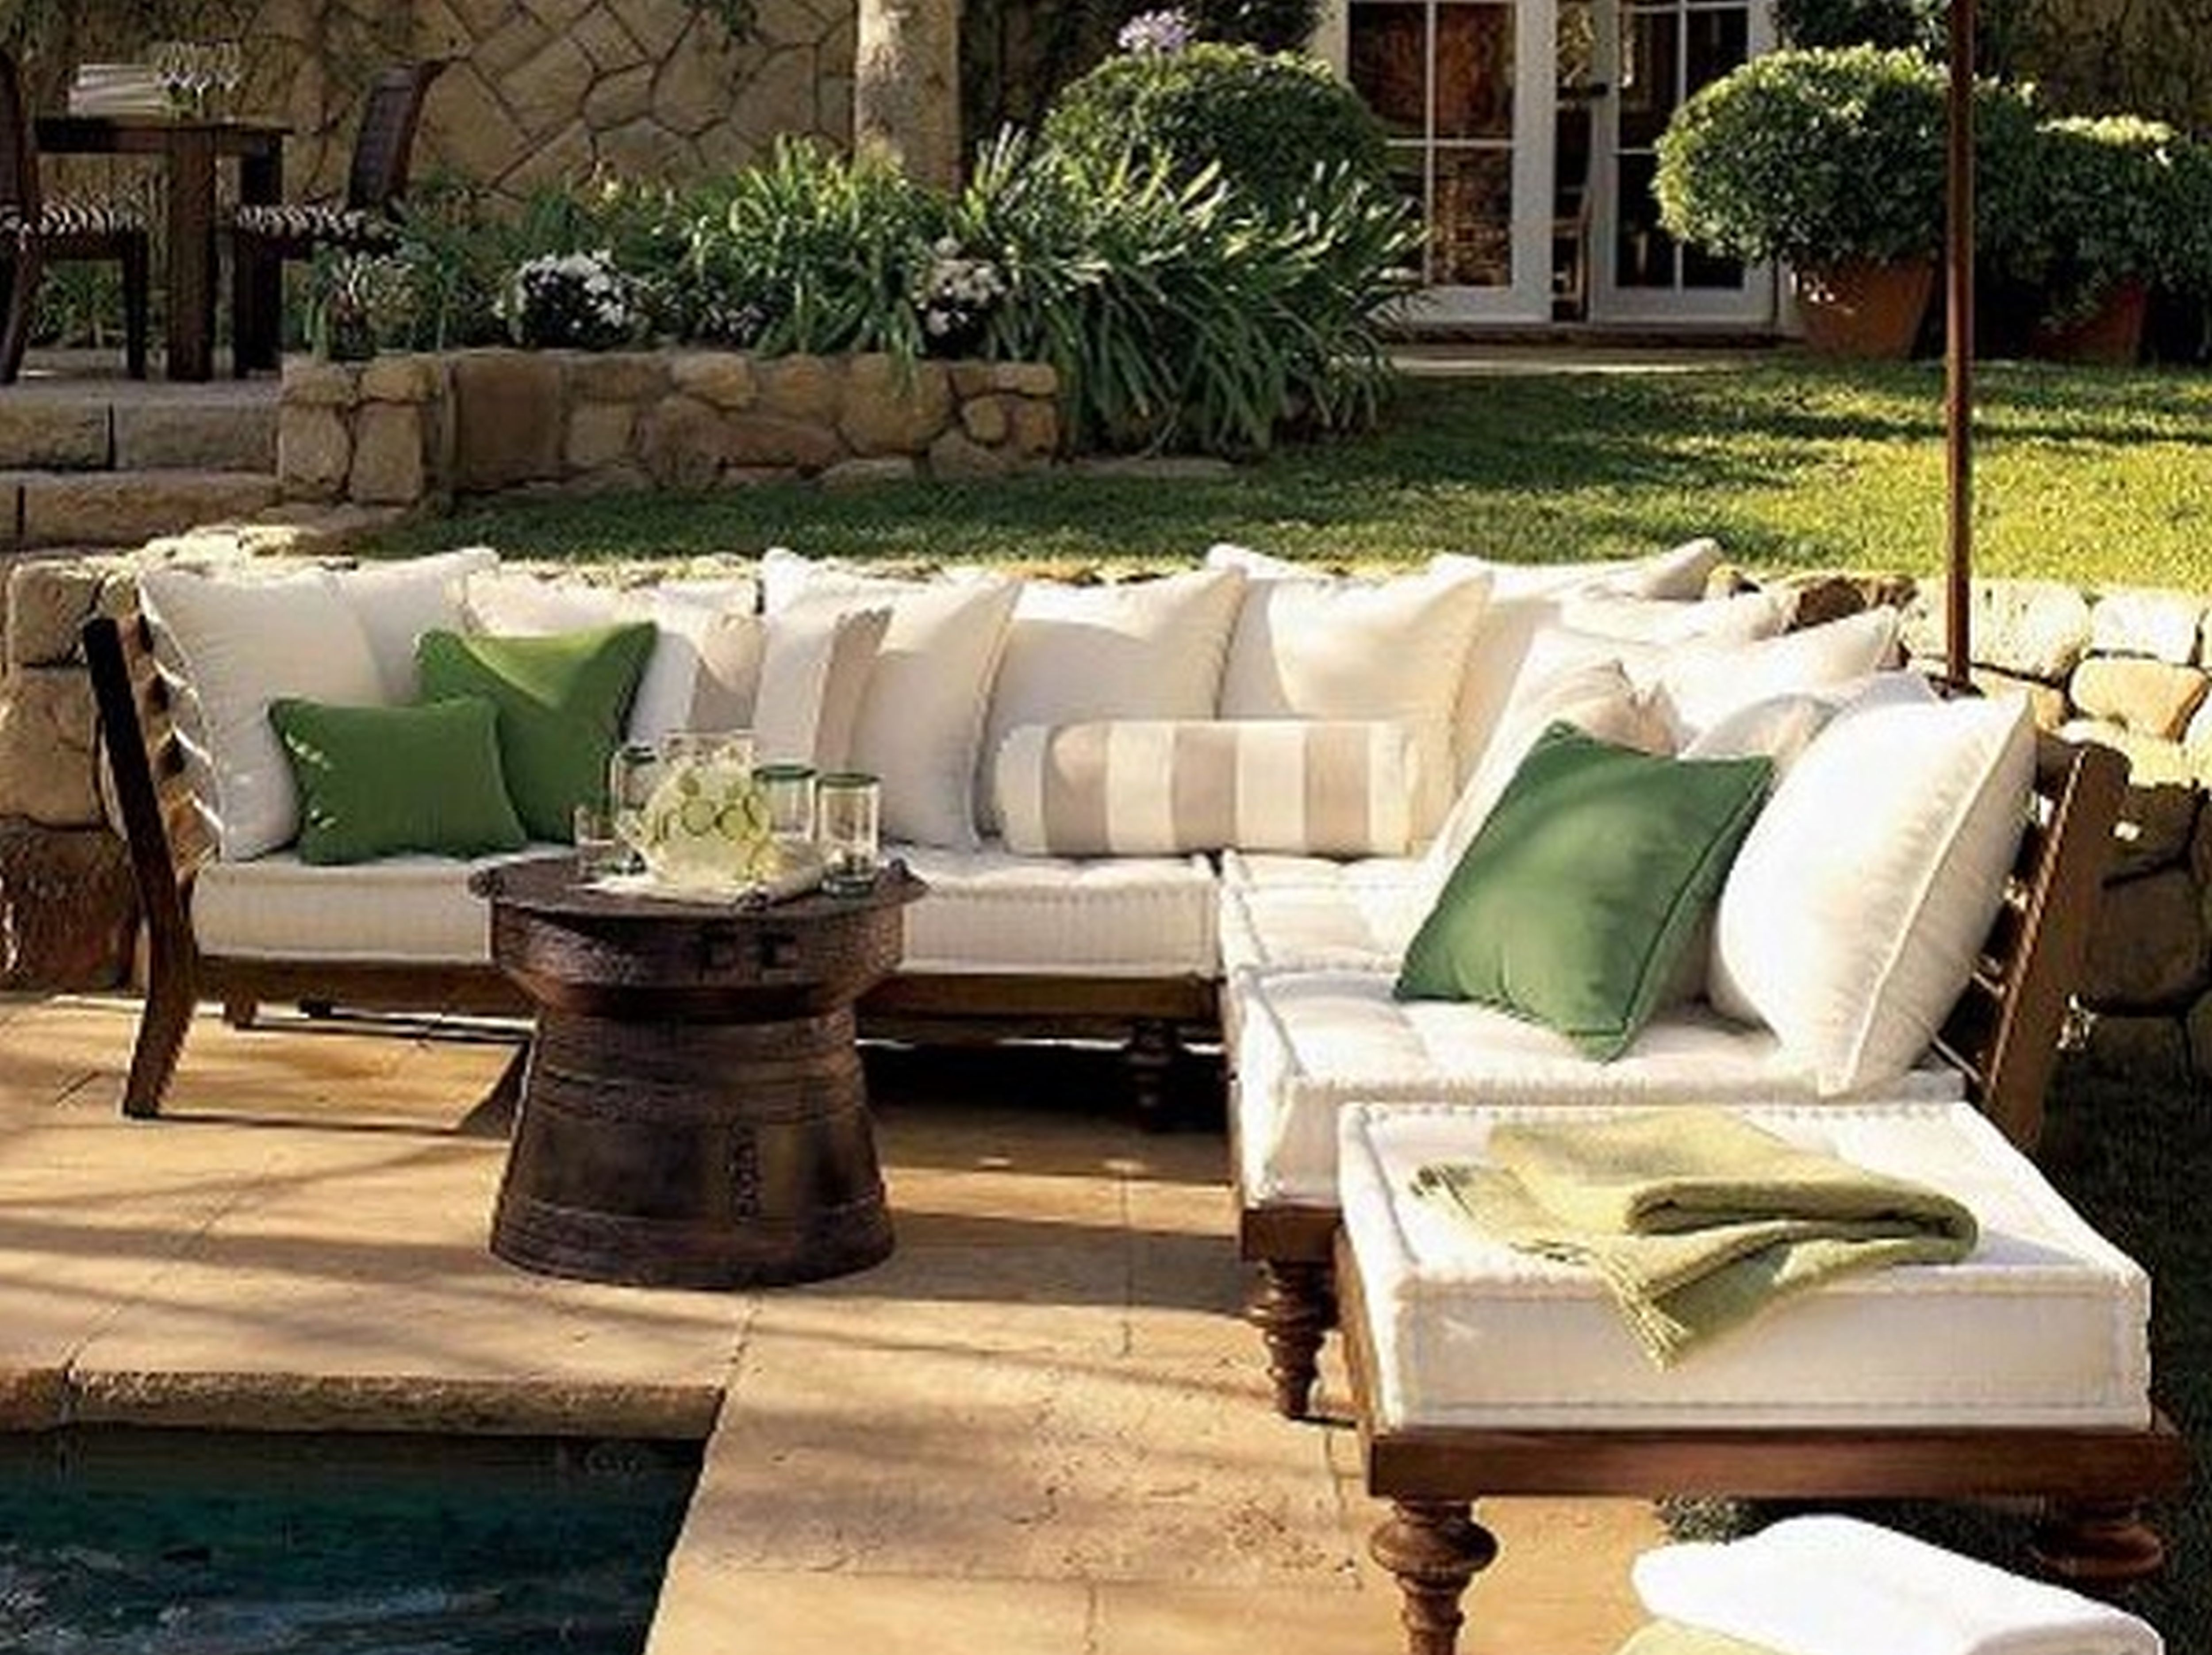 Furniture Inspiring Outdoor Furniture Design Ideas With Ebel With Outdoor Sofa Chairs (Image 8 of 15)